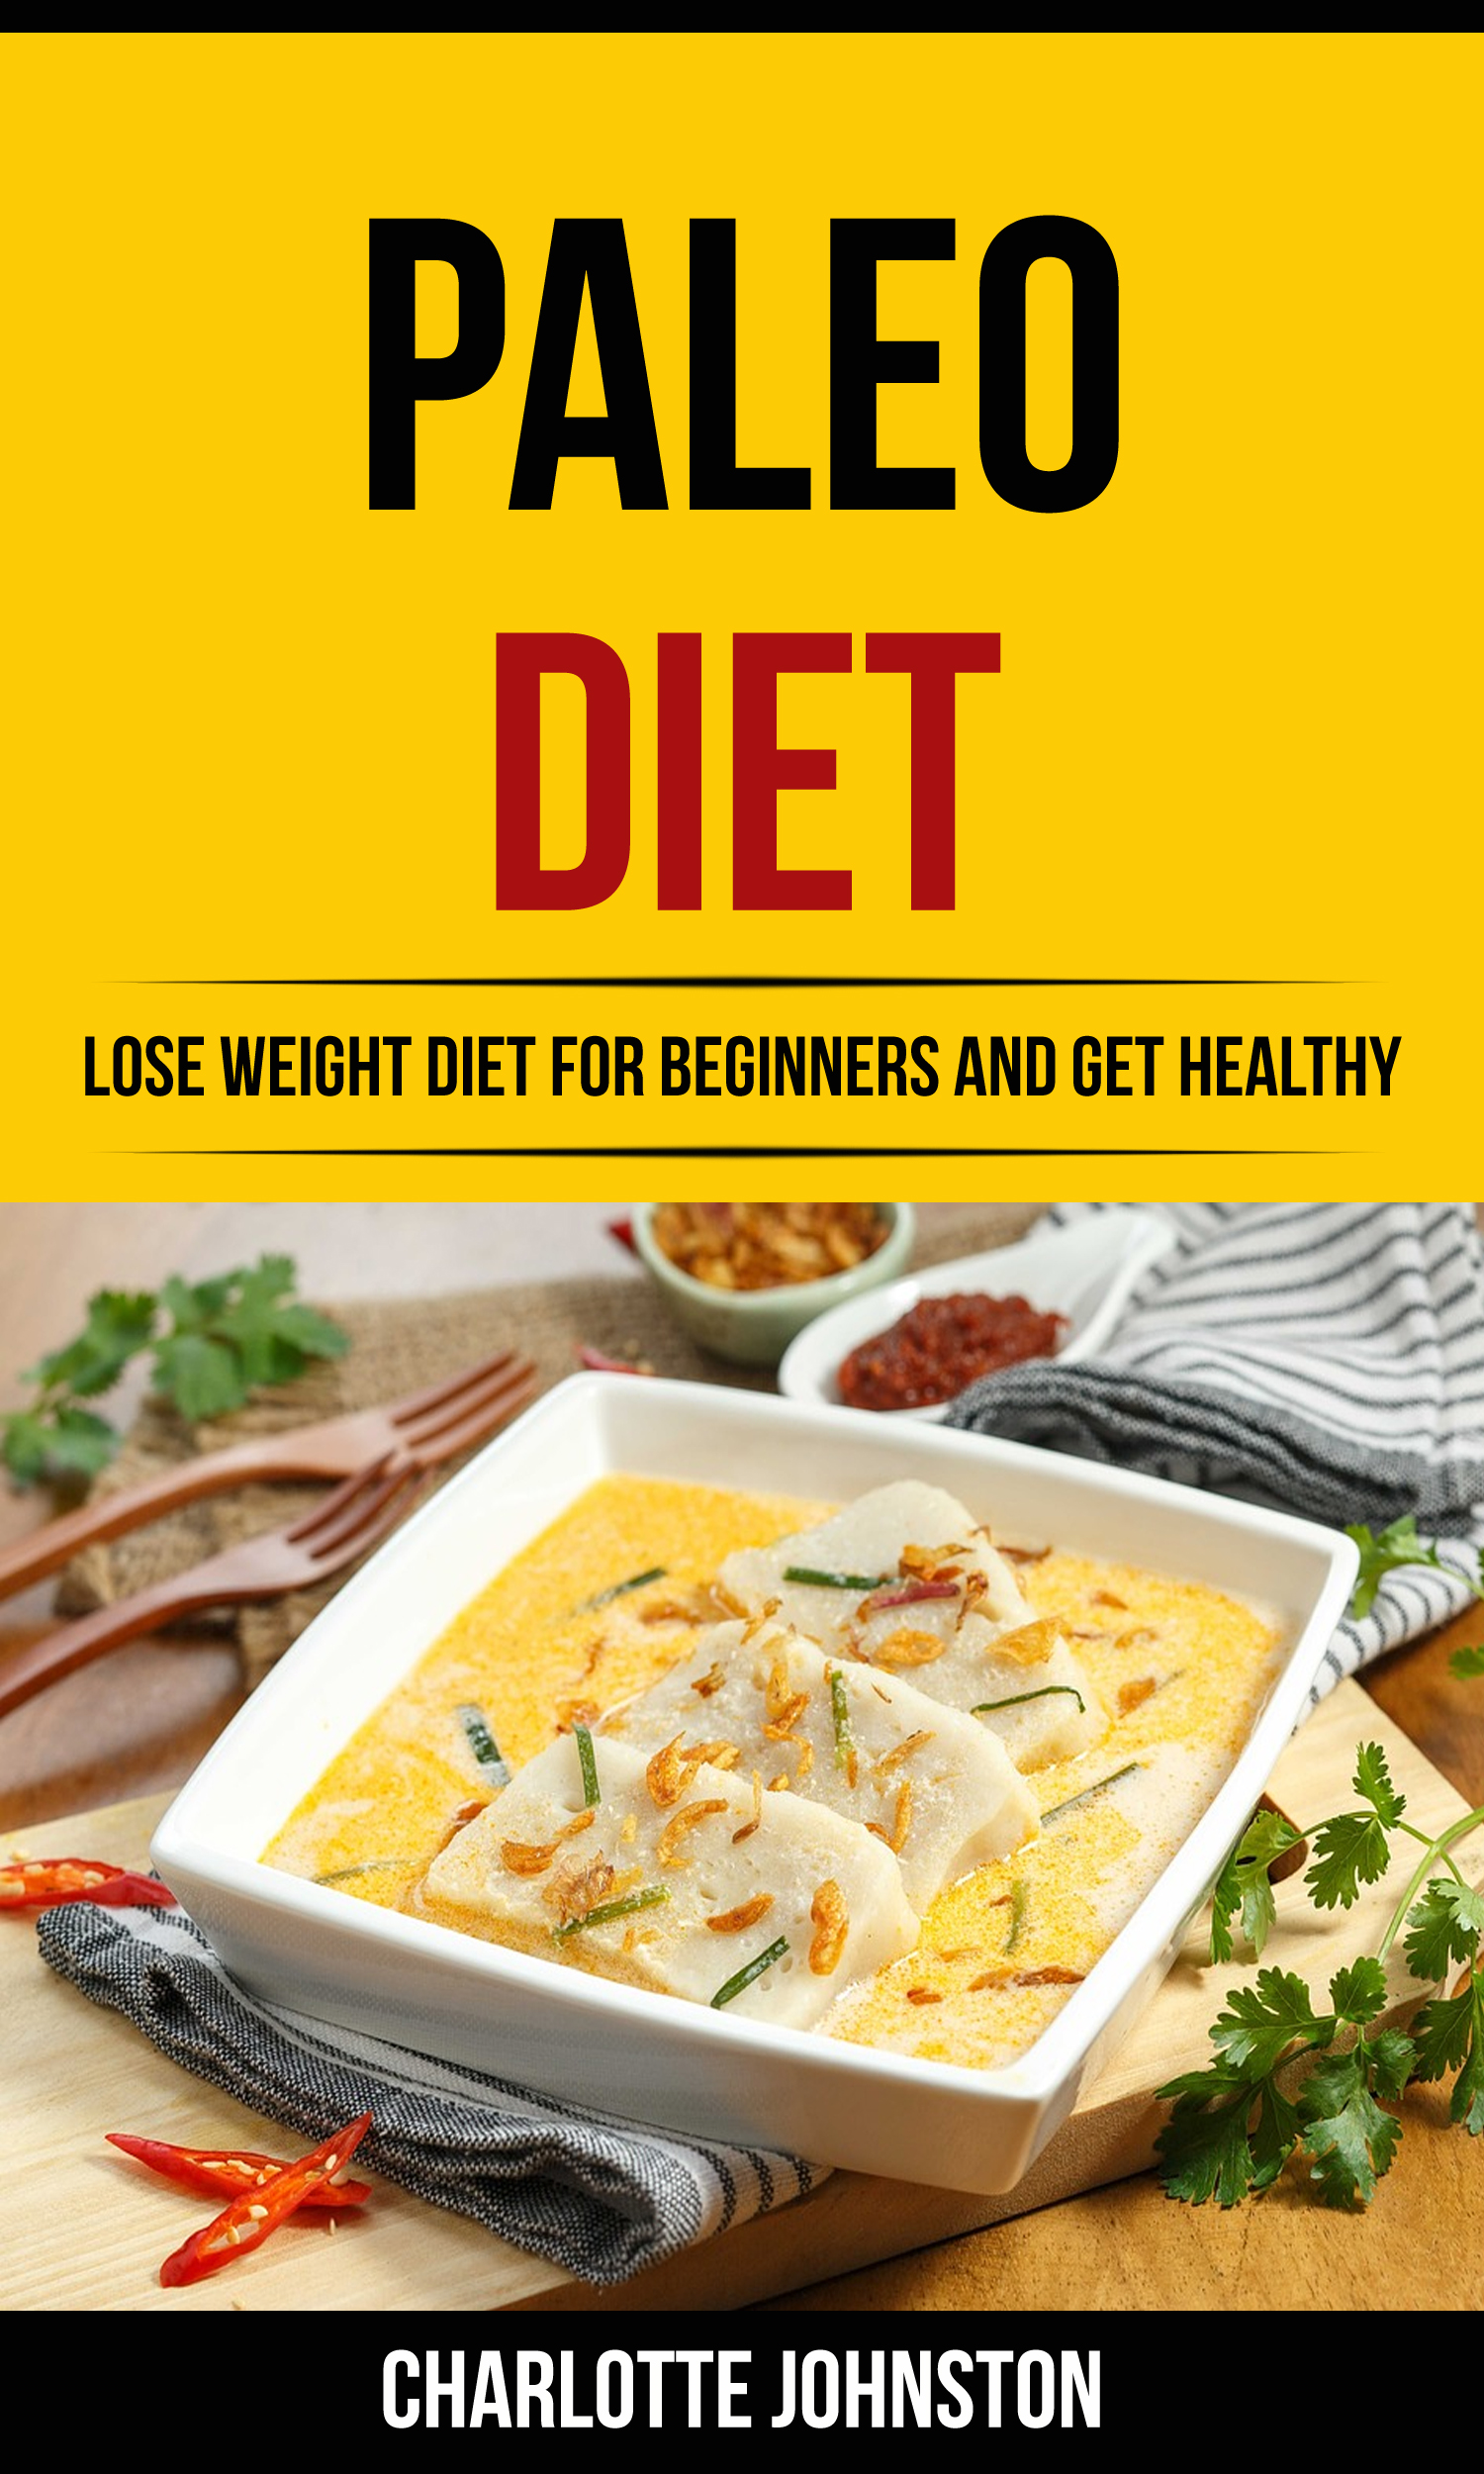 Paleo diet: lose weight diet for beginners and get healthy